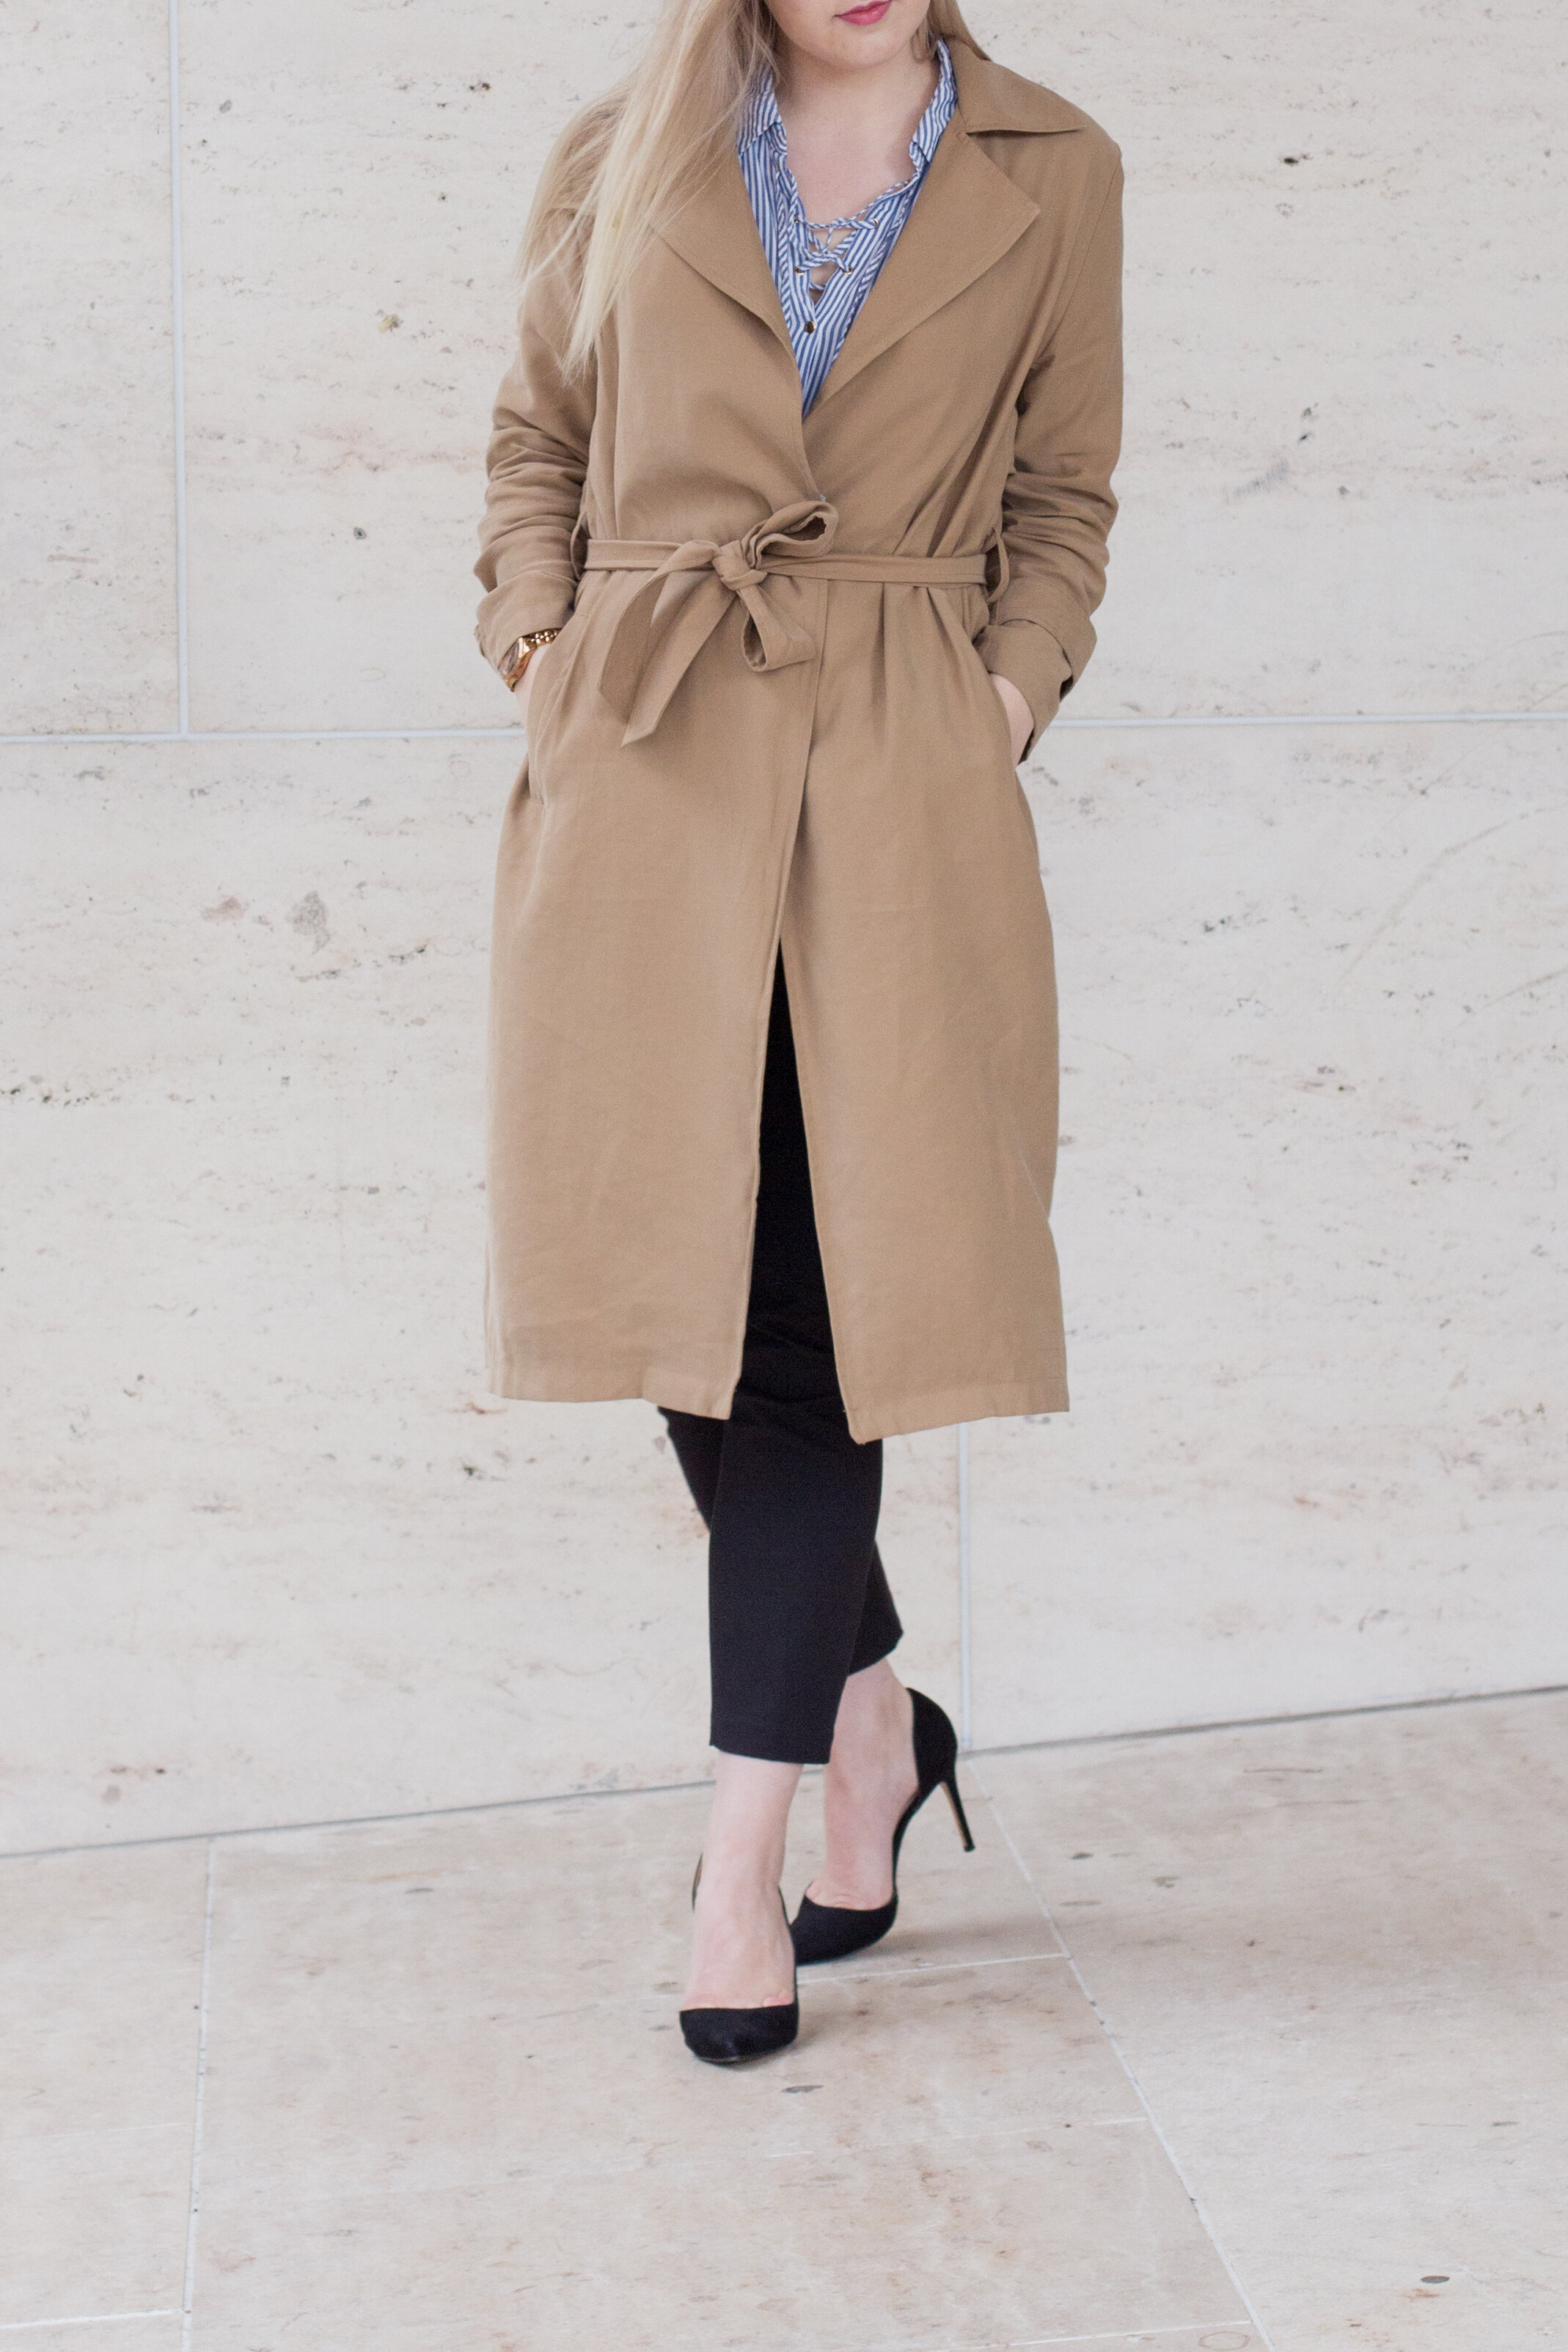 Trench coat fall (3 of 21).jpg